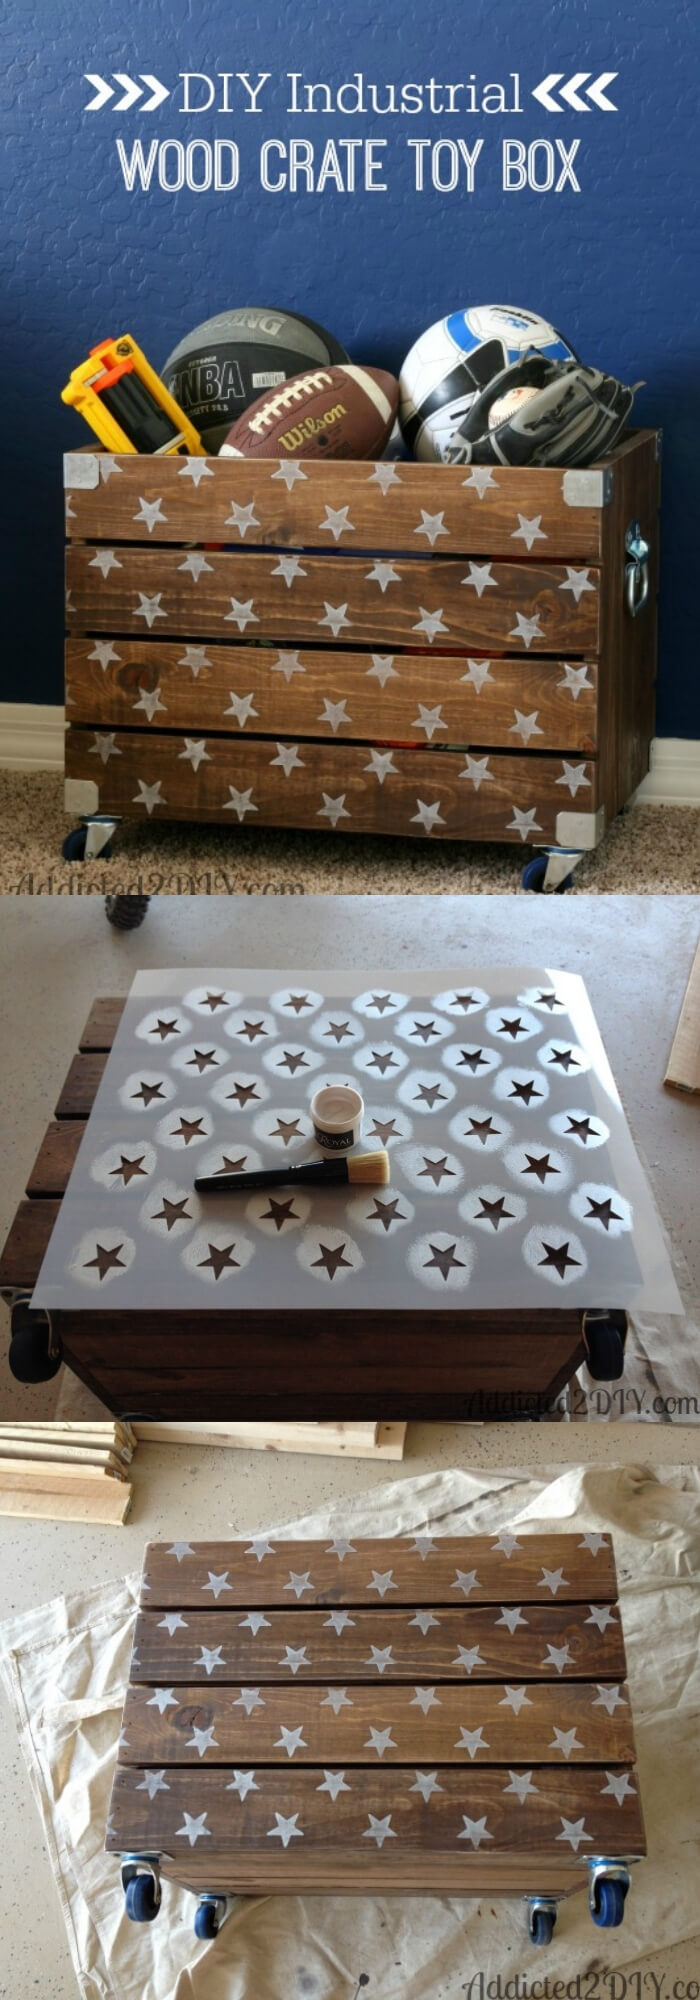 Wood Crate Toy Box | Best DIY Wood Crate Projects & Ideas